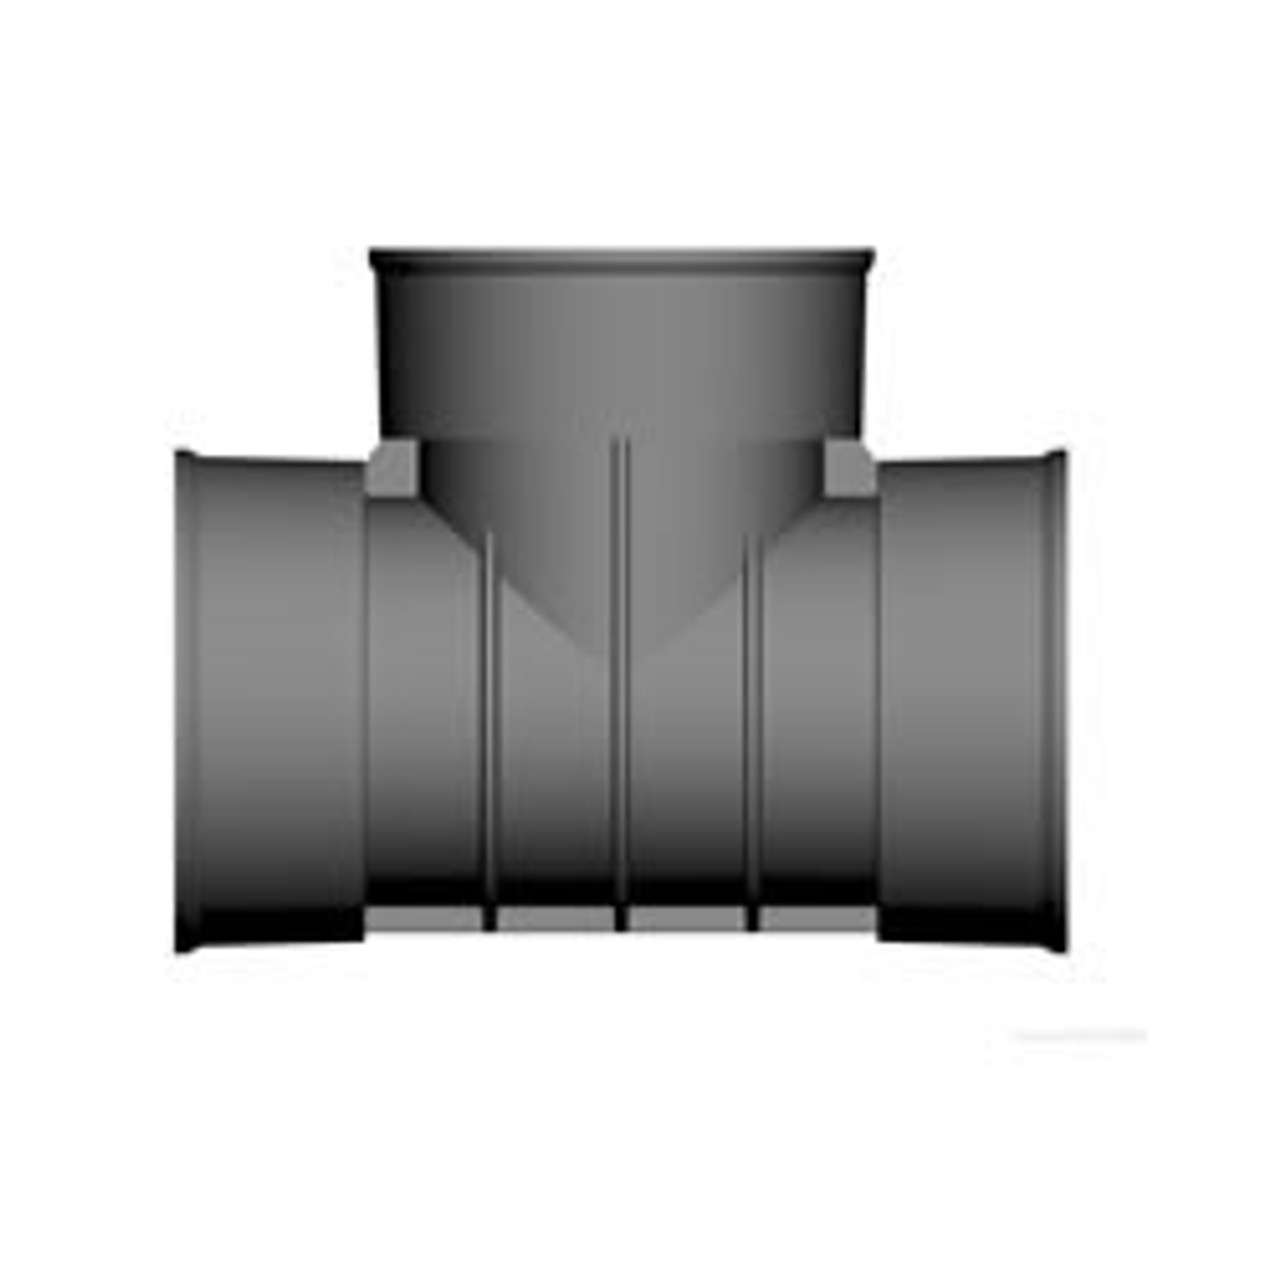 225mm twinwall T junction